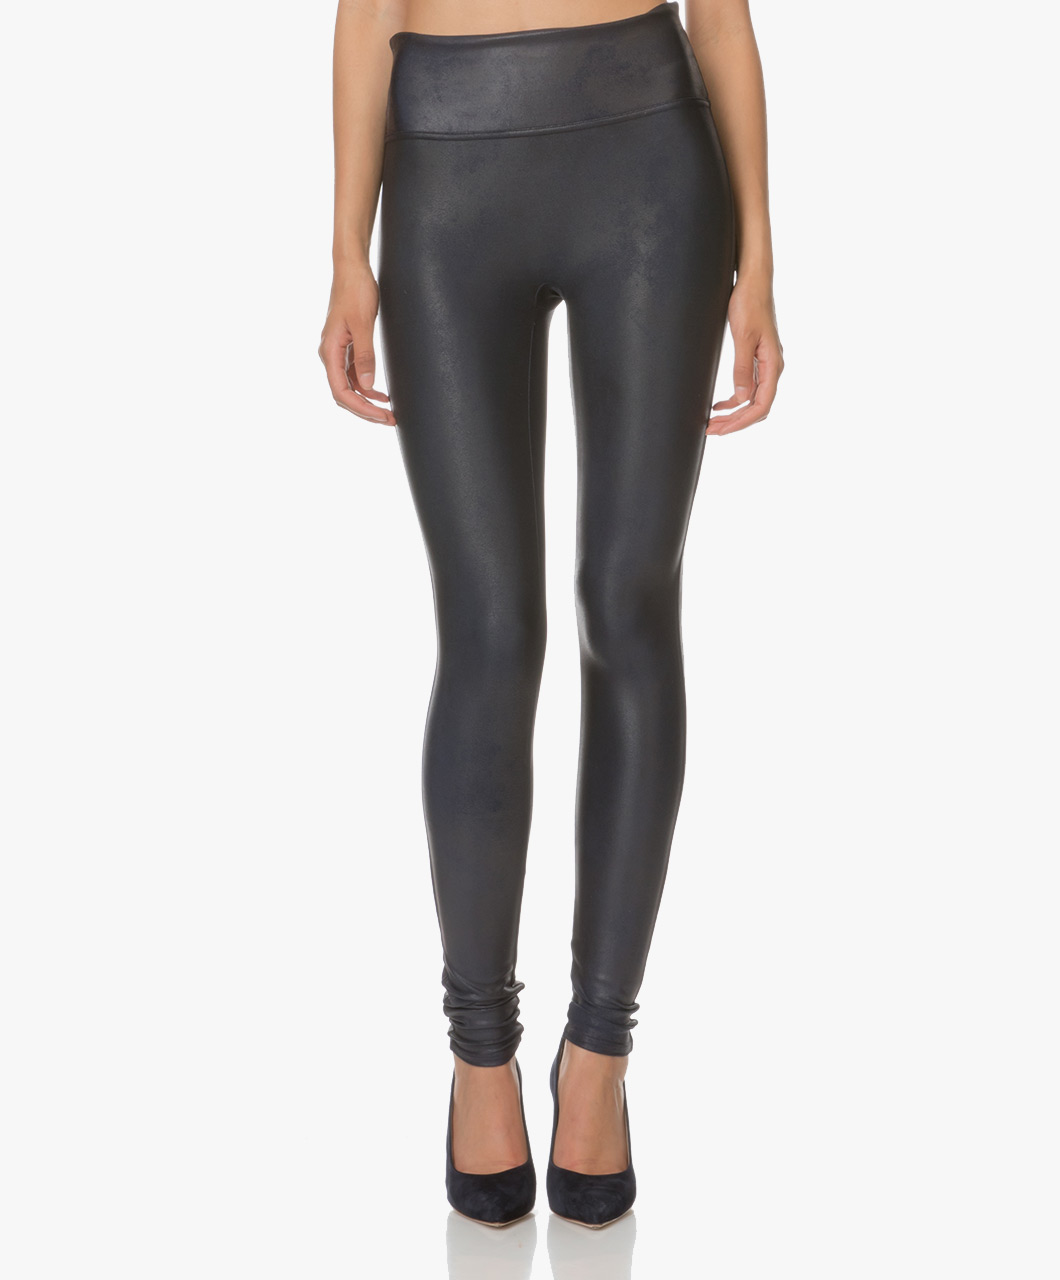 5a95c40af2646 SPANX® Ready-to-Wow! Faux Leather Leggings - Night Navy - spx 2437 545 -  night navy